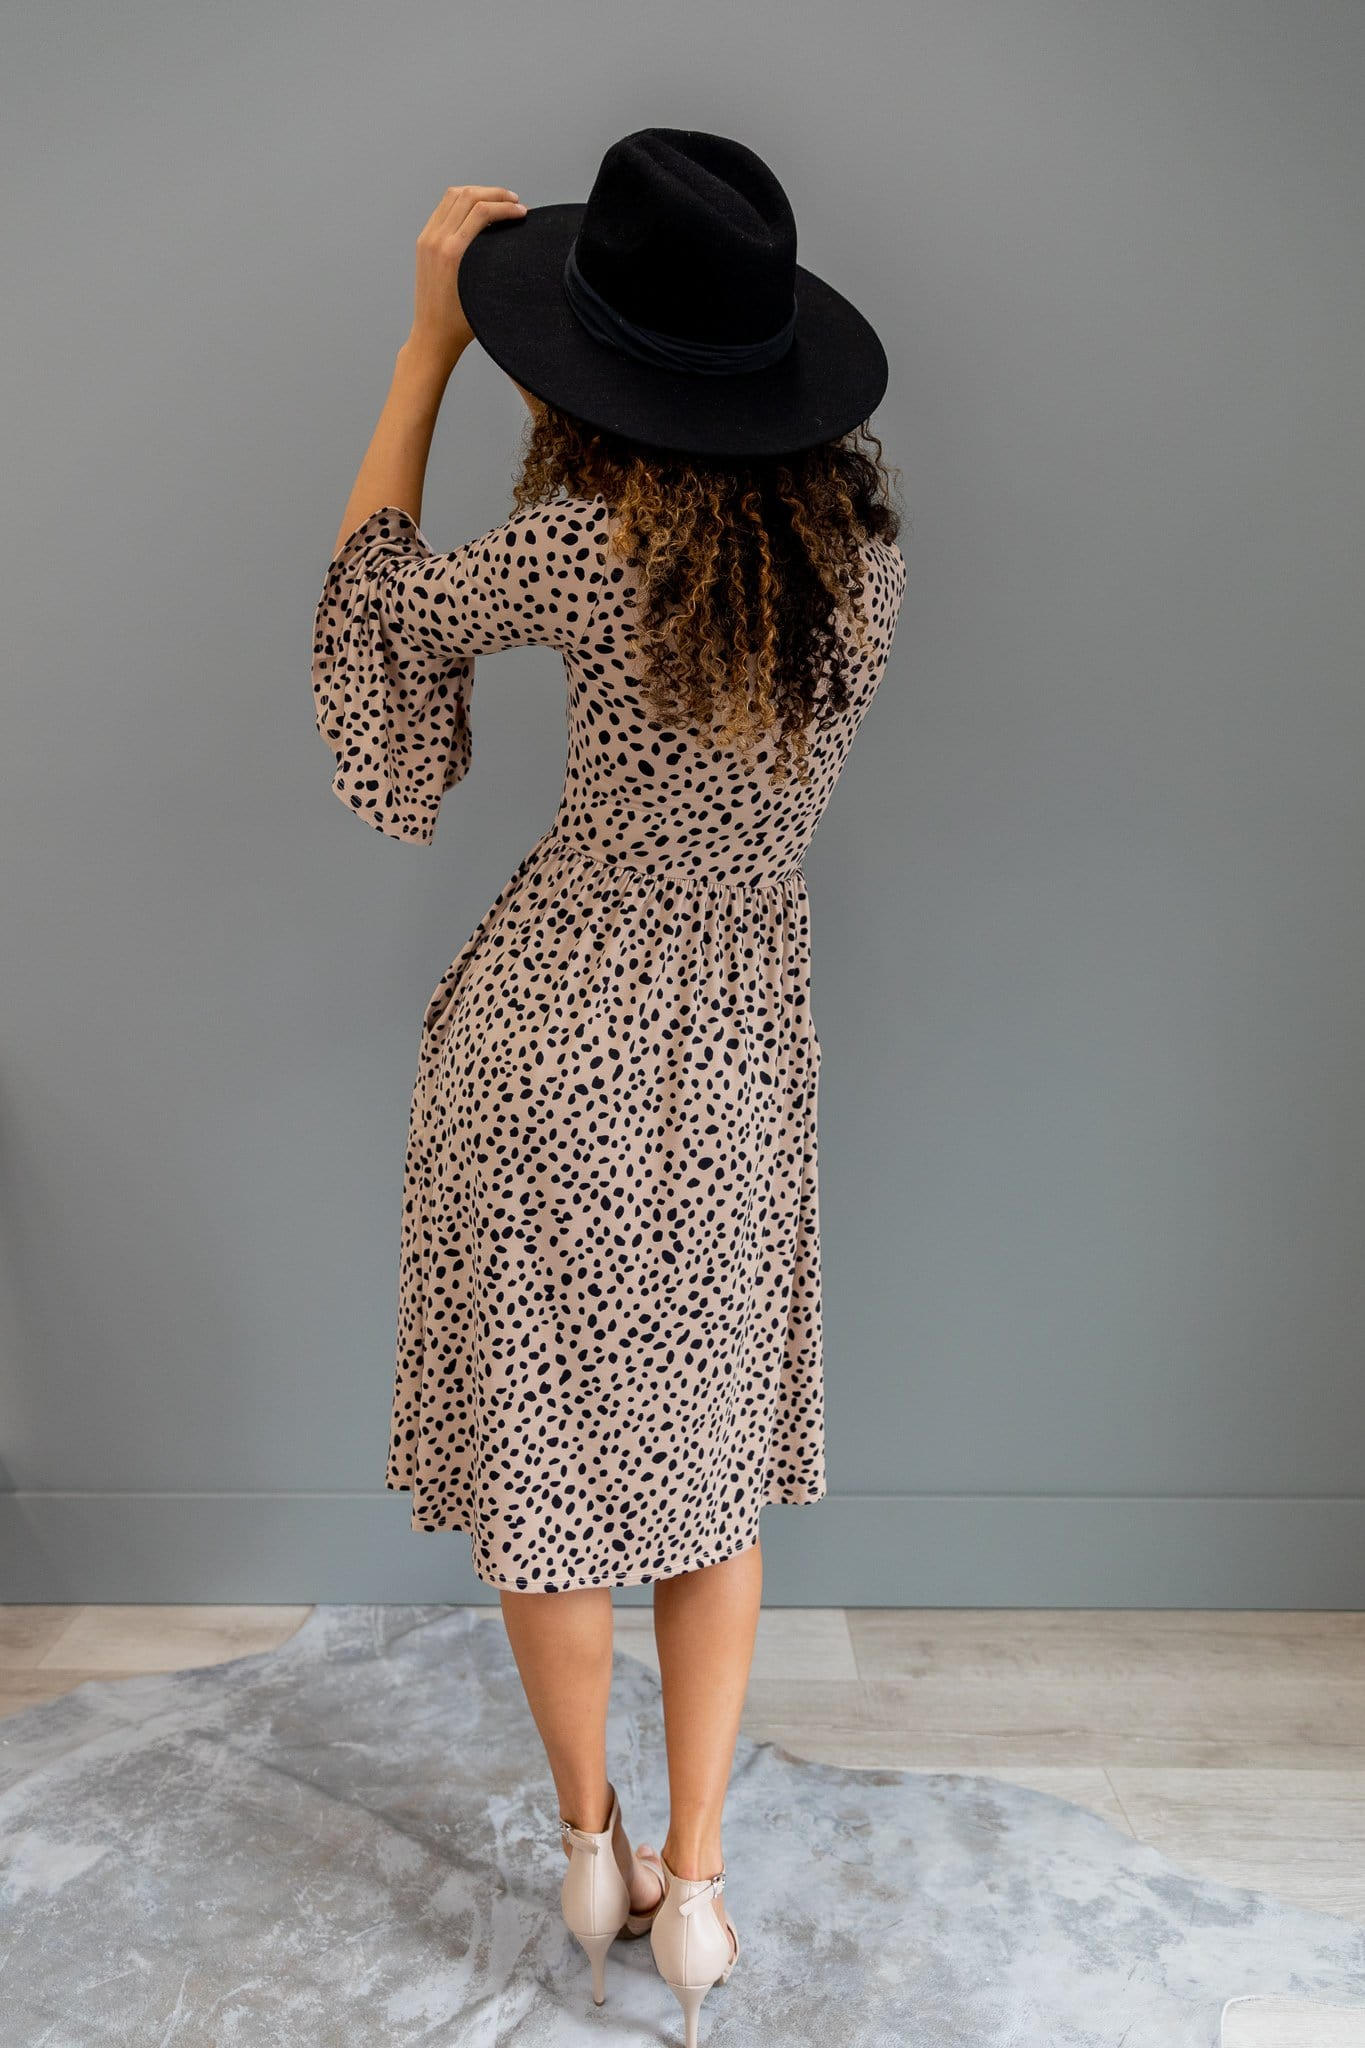 The Glenna Bell Sleeve Dress in Animal Print